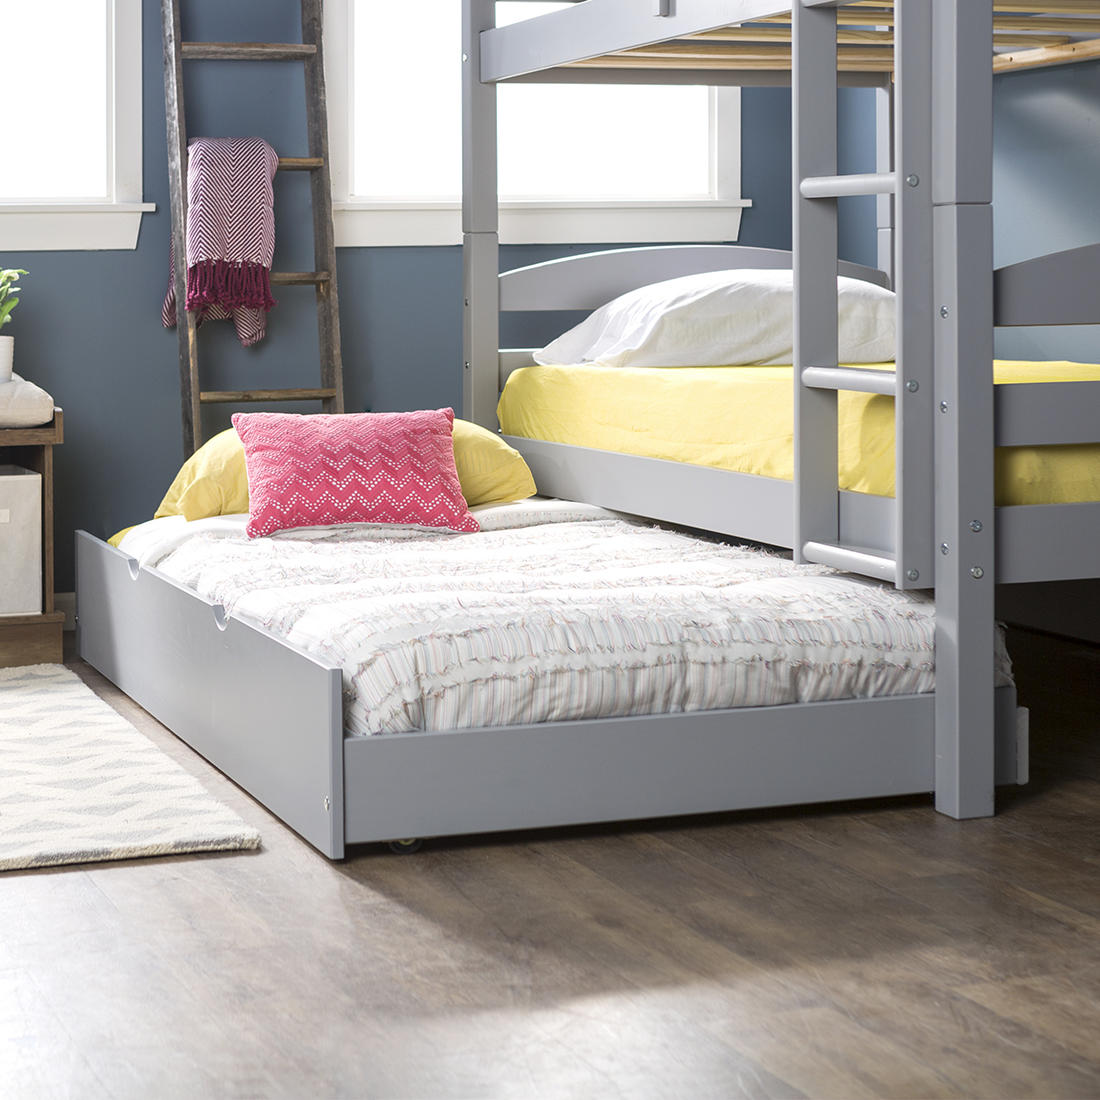 competitive price 7ab52 4d26d W. Trends Twin-Size Solid Wood Trundle Bed - Gray